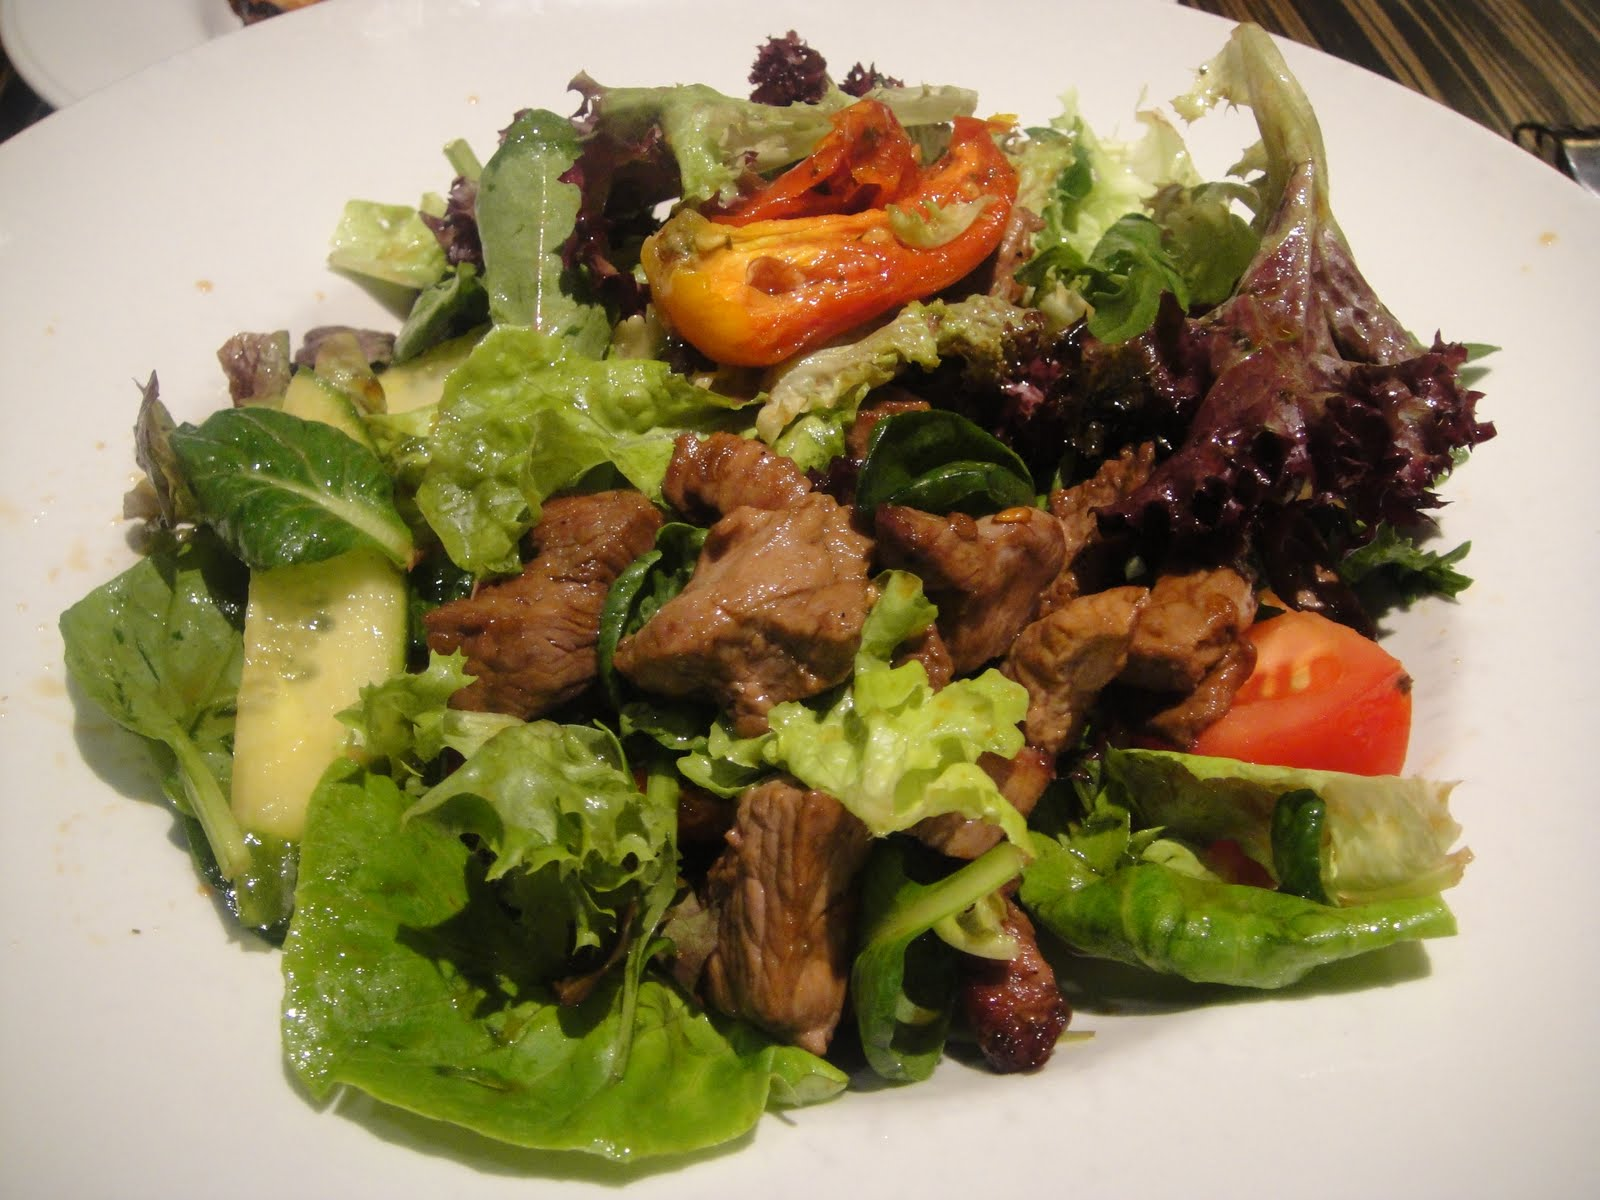 Warm+Beef+Salad+-+dry+beef+strips+on+bed+of+mesculin+salad+w+semidried ...